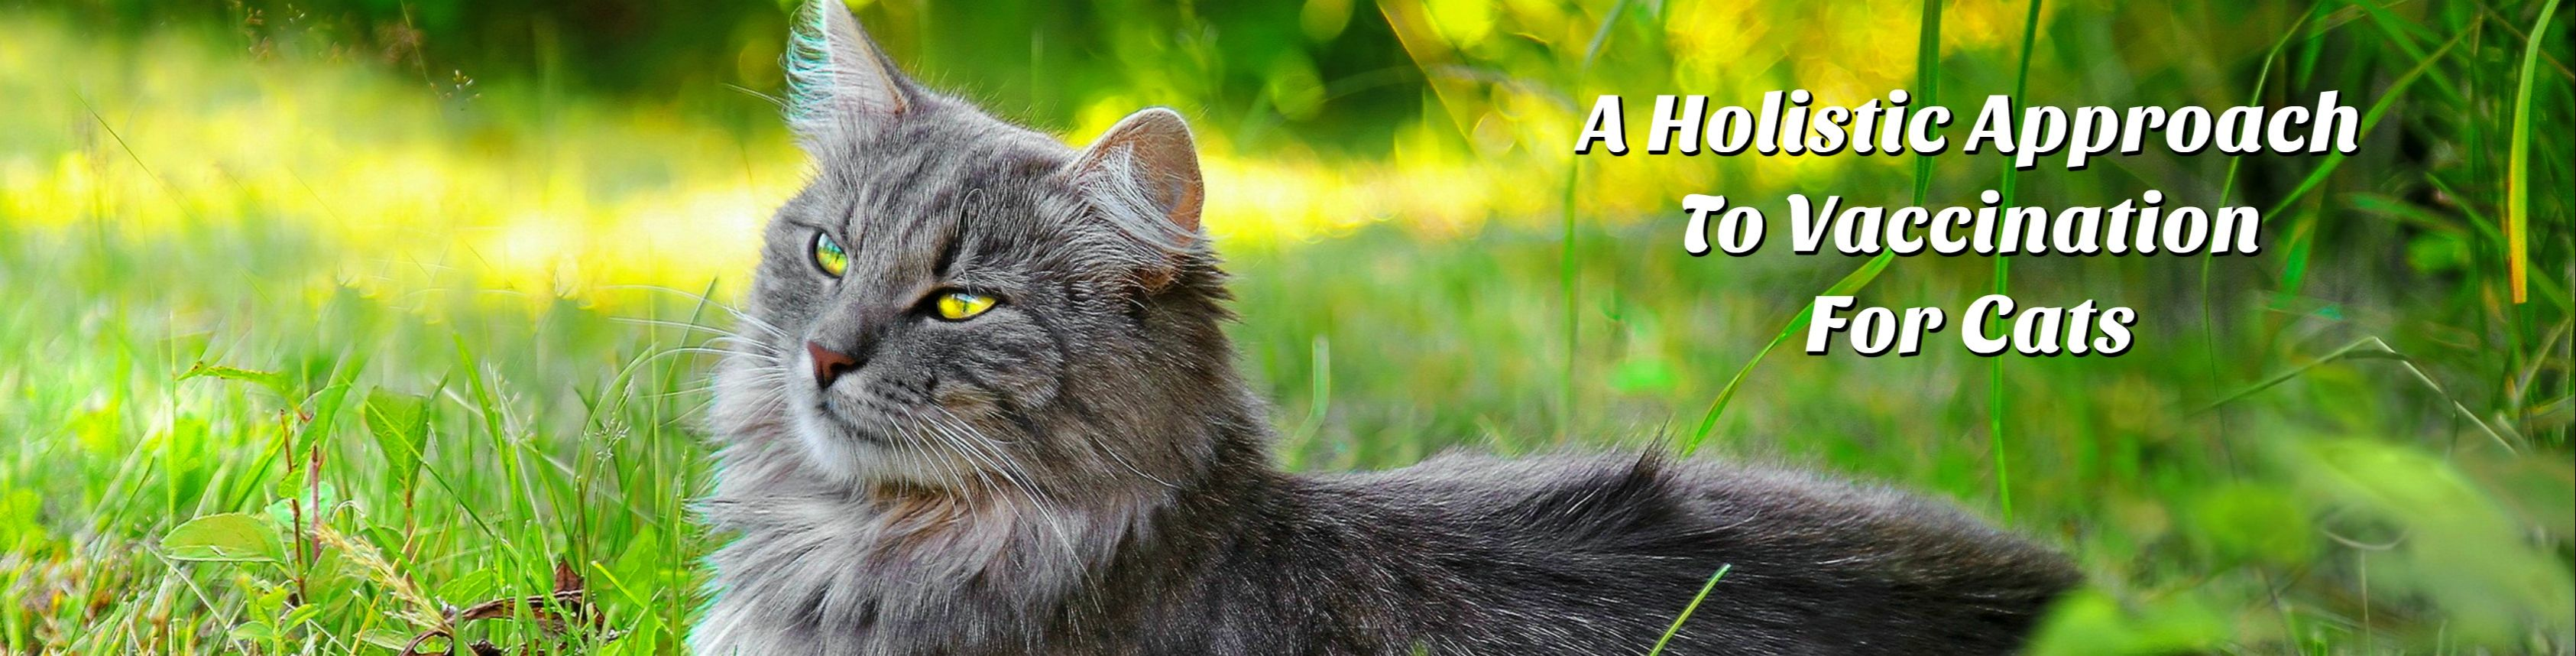 A Holistic Approach To Vaccination For Cats - Holistic And